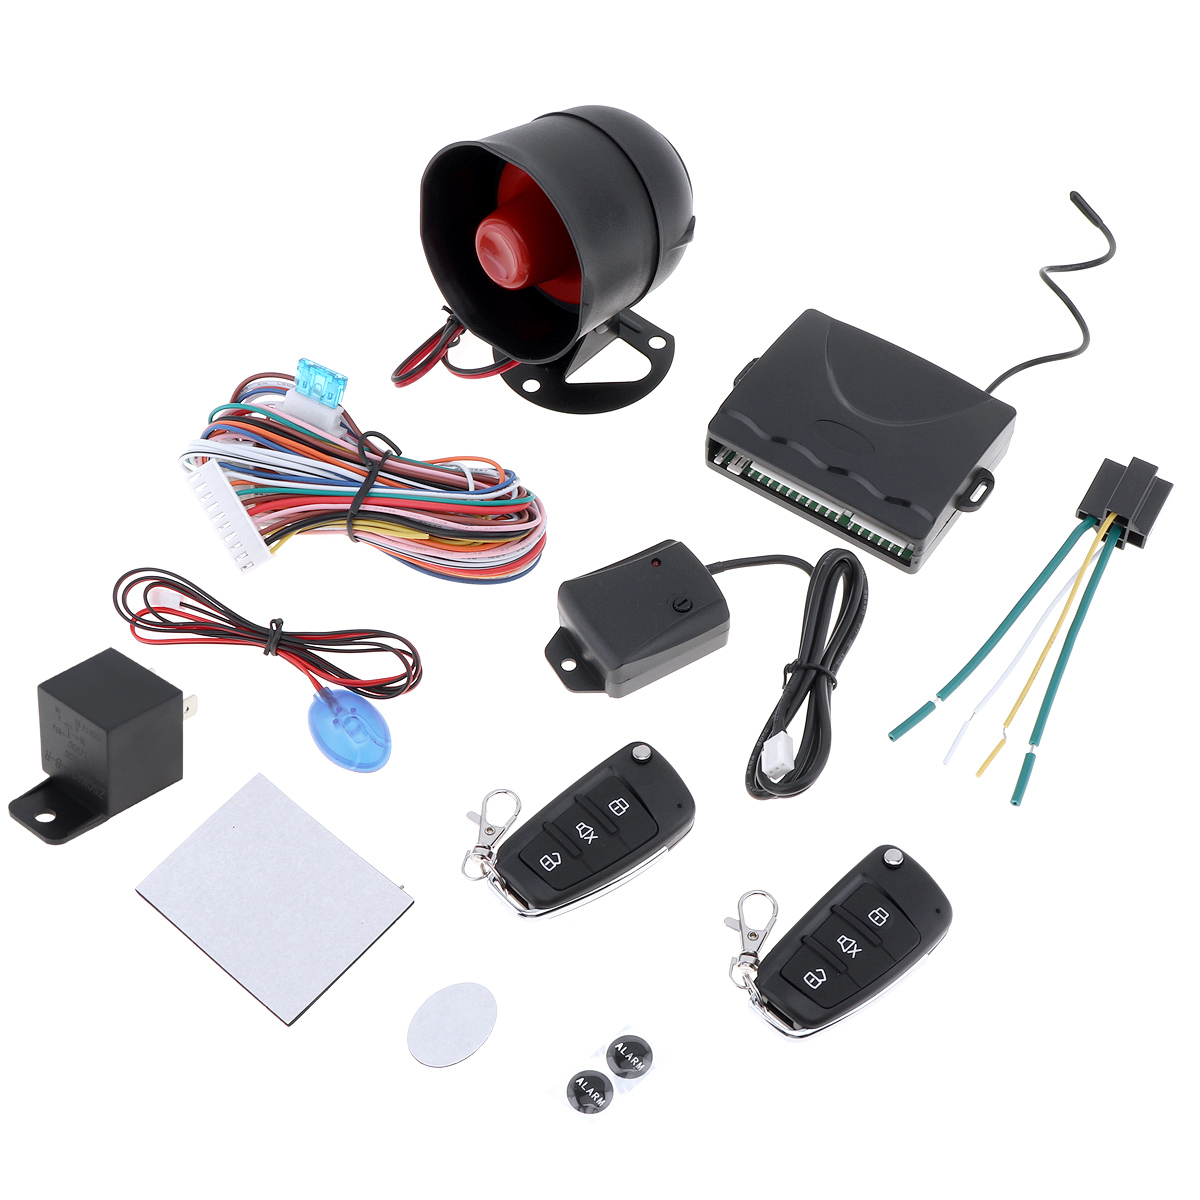 Universal 12V Auto Car Alarm Keyless Entry System with Remote Control Siren Sensor